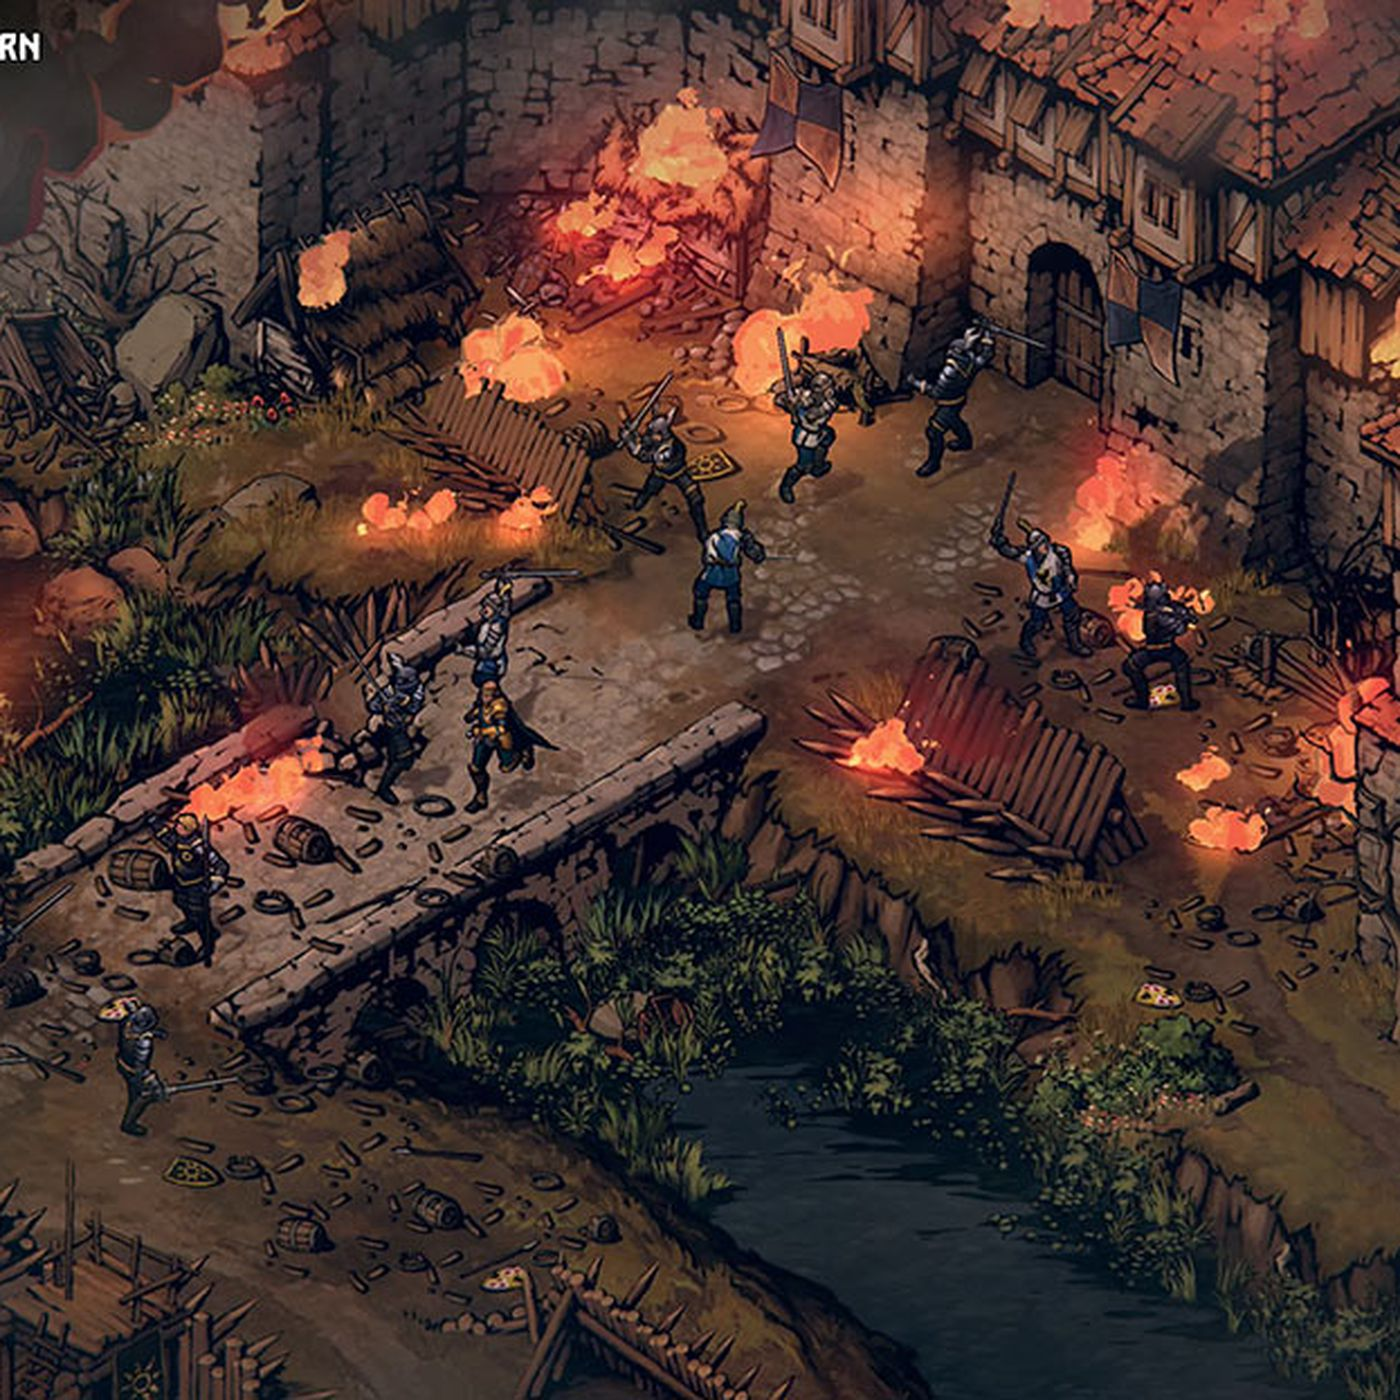 Thronebreaker: The Witcher Tales is a card-powered isometric